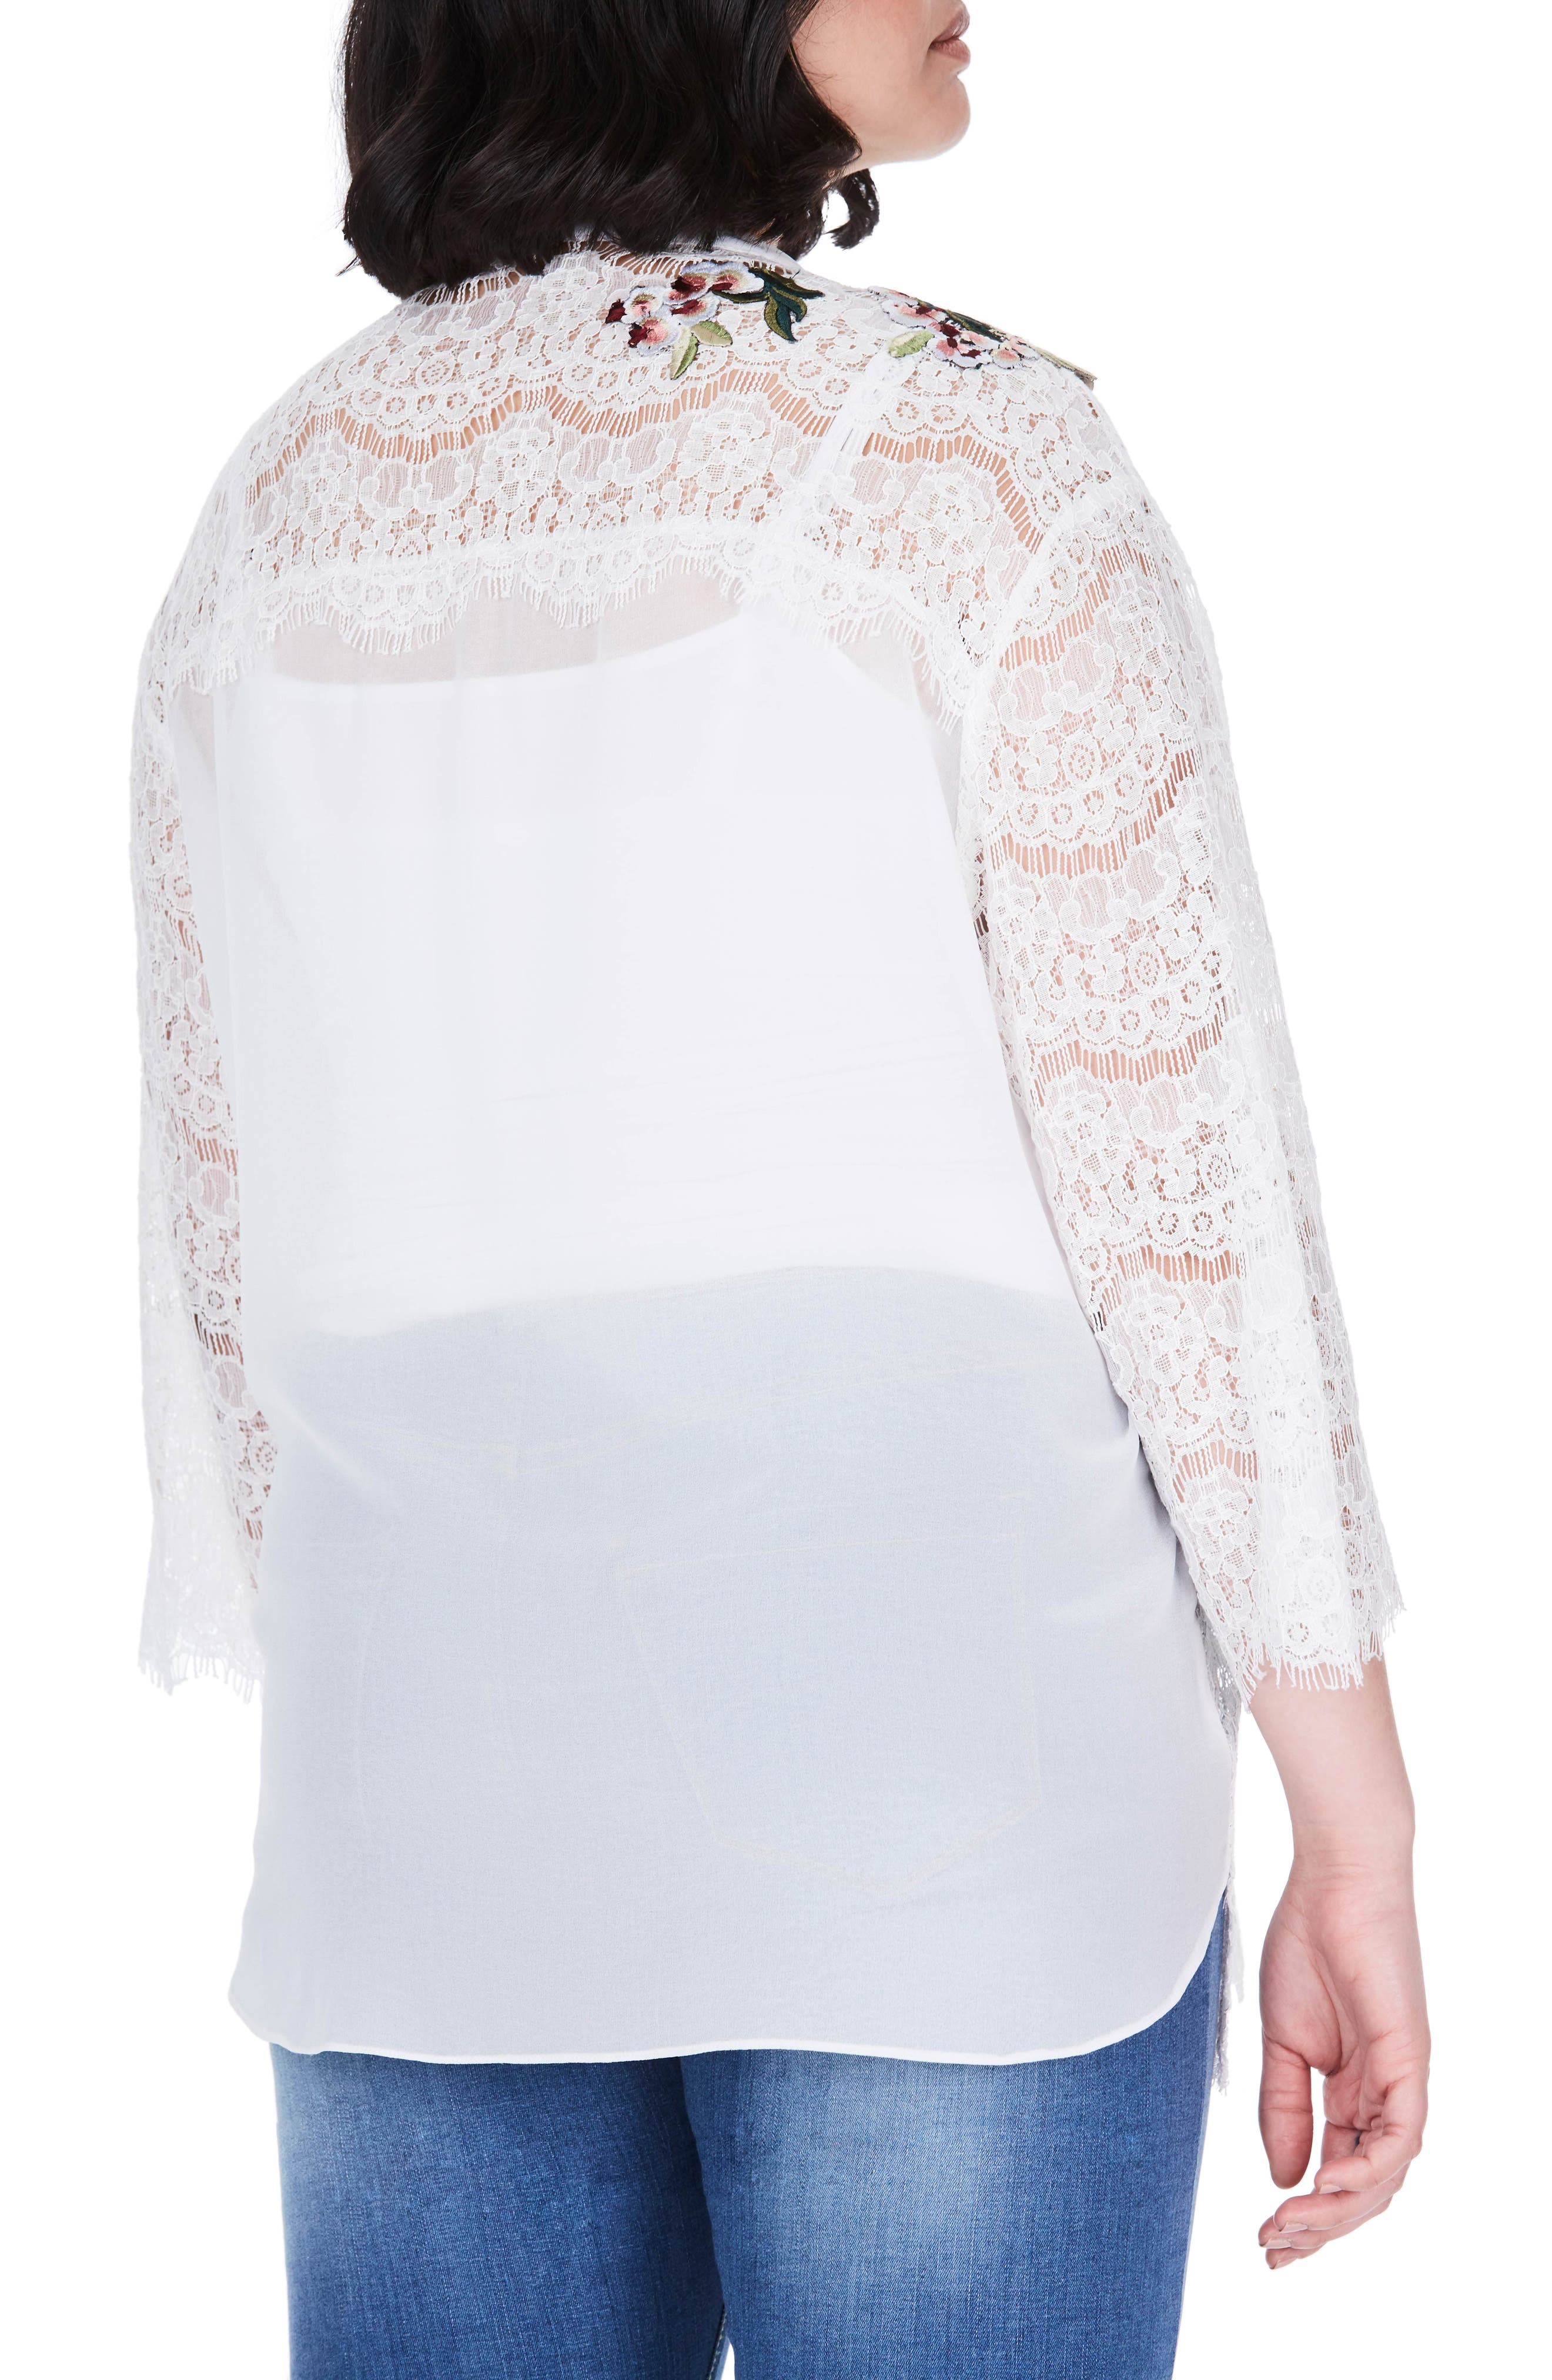 Floral Embroidered Lace Top,                             Alternate thumbnail 2, color,                             White